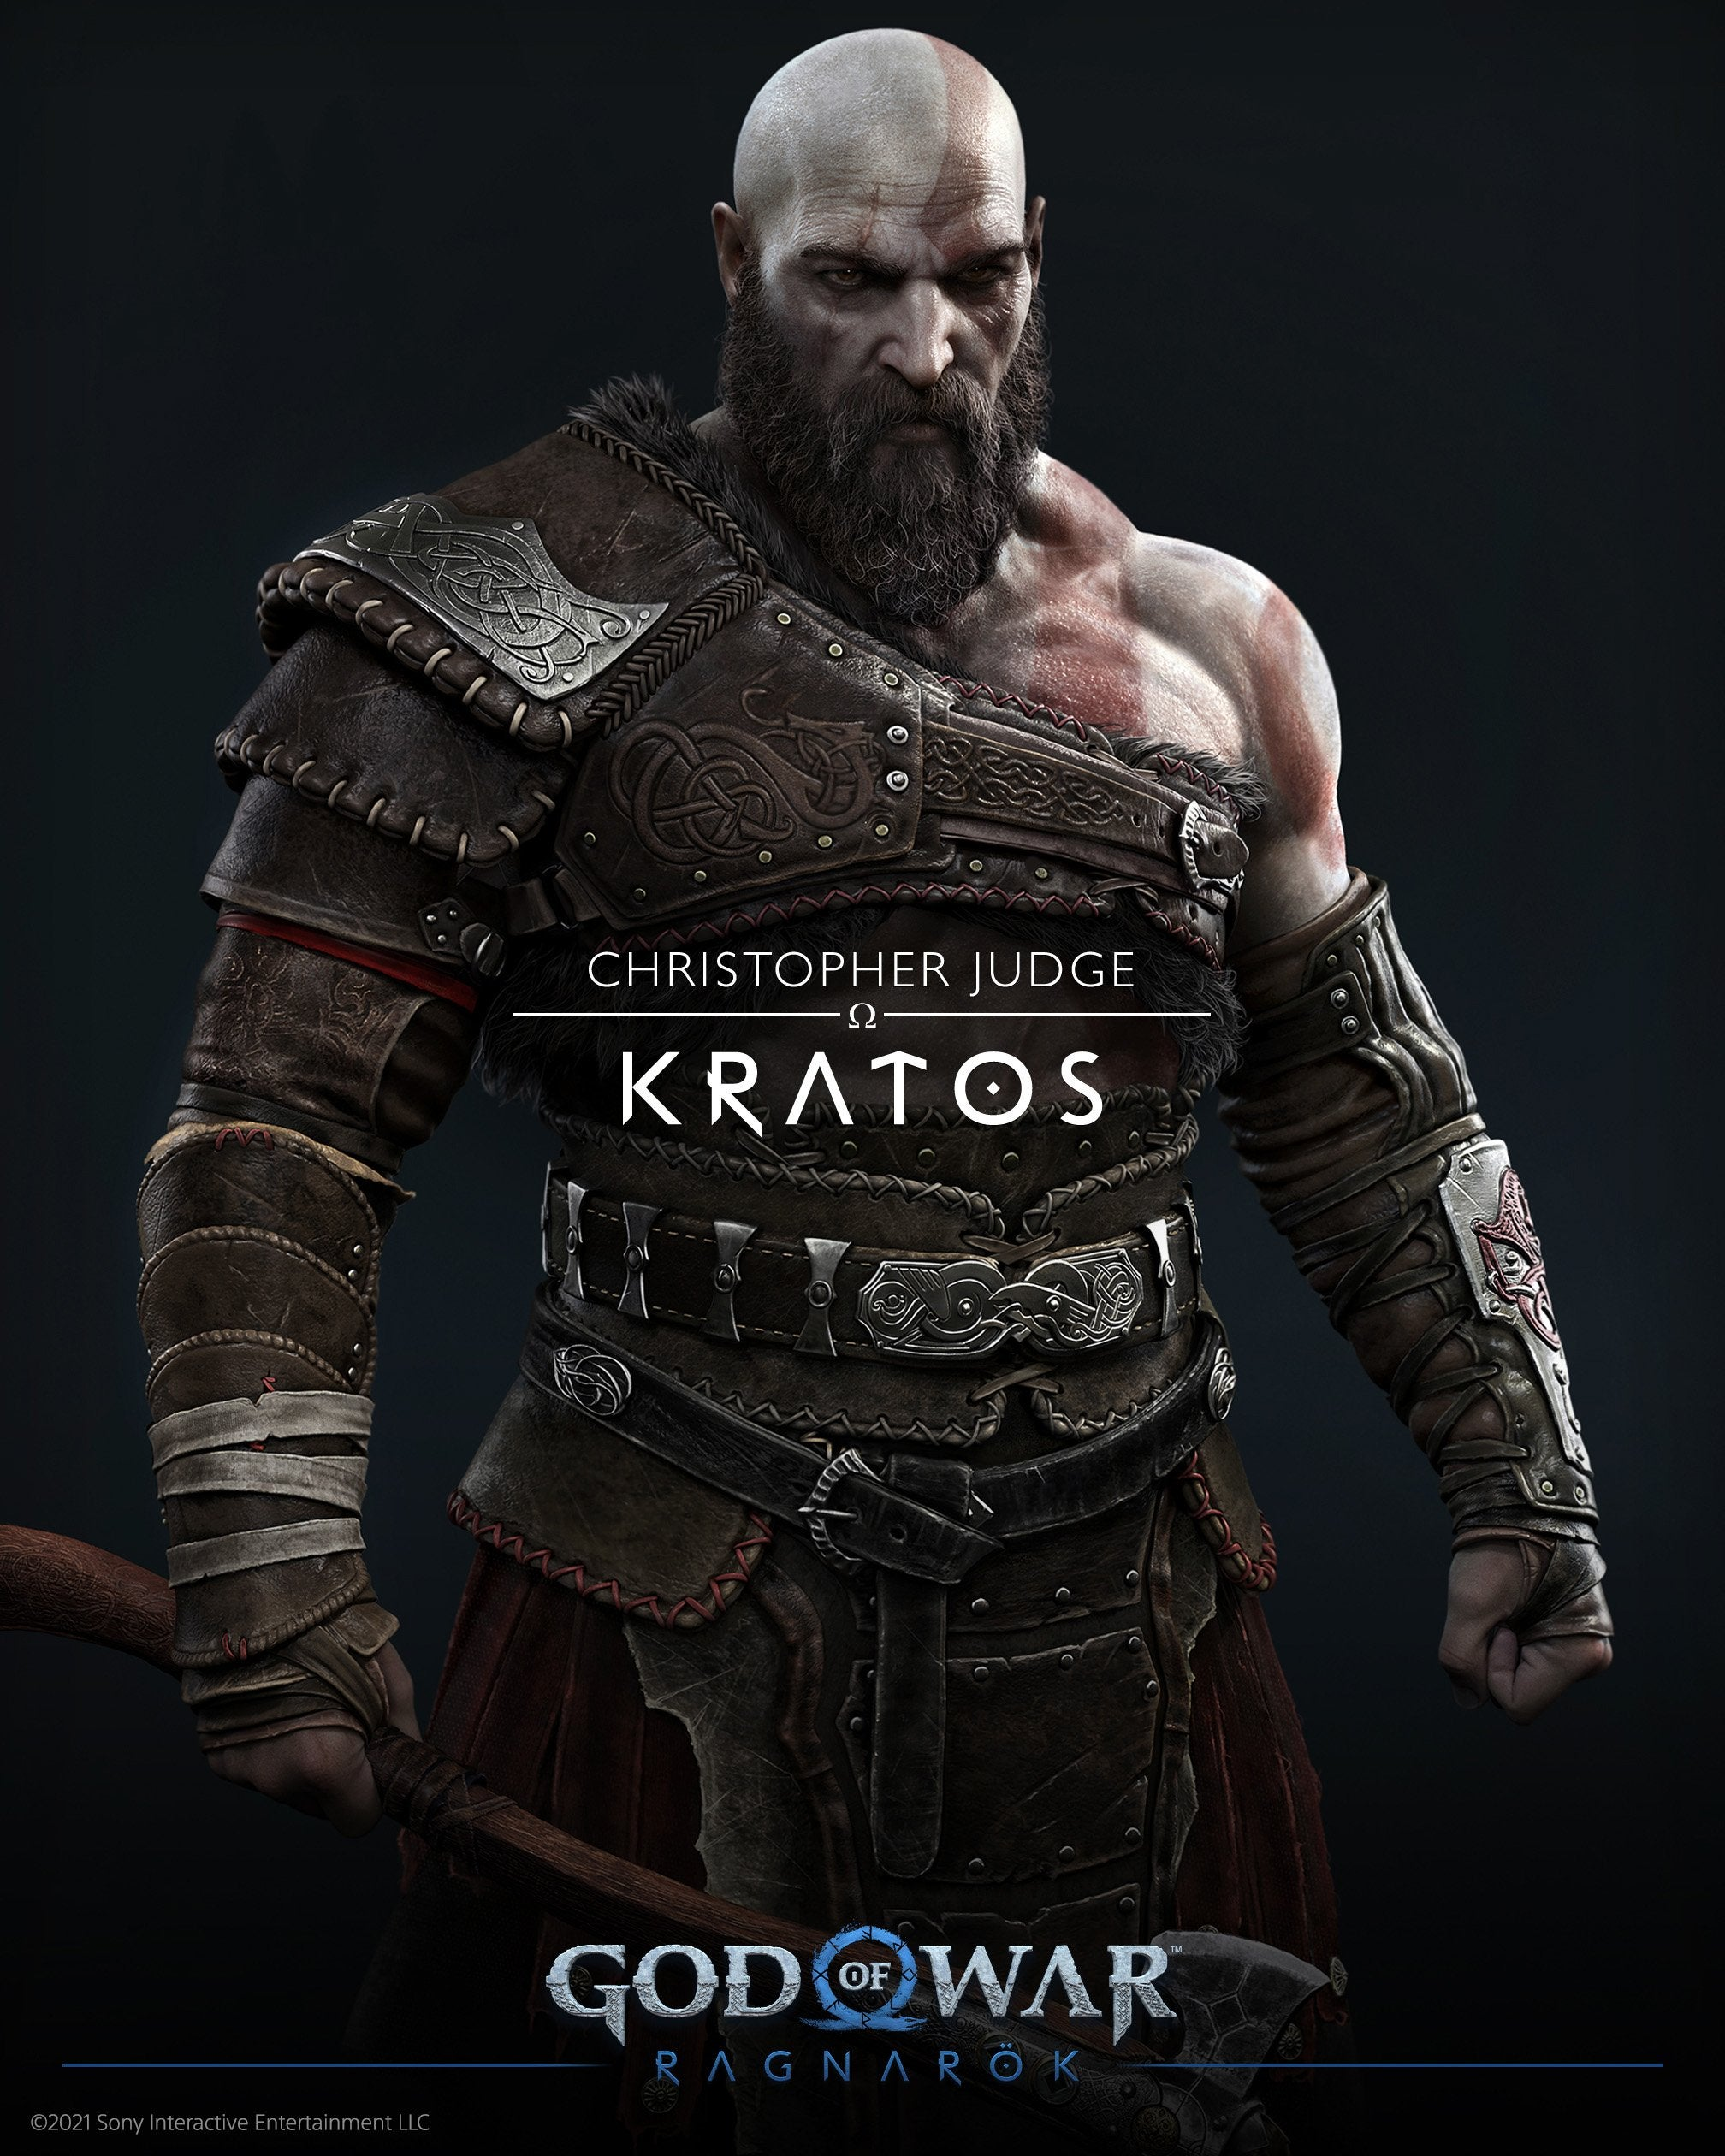 Kratos - Voiced by Christopher Judge